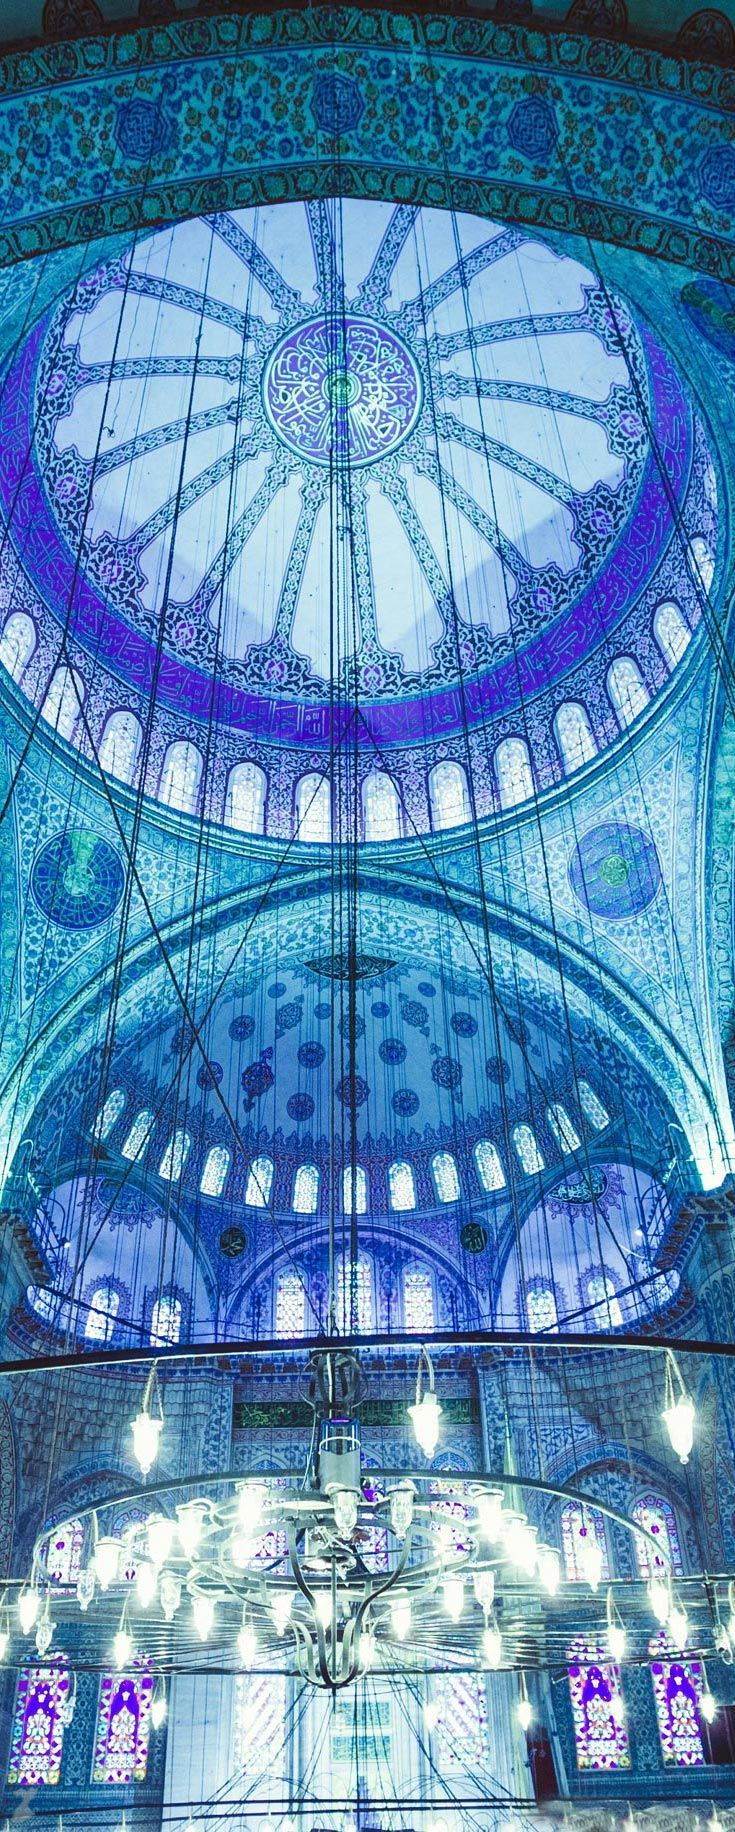 Sultan Ahmed Mosque -Blue Mosque- Istanbul | Turke…